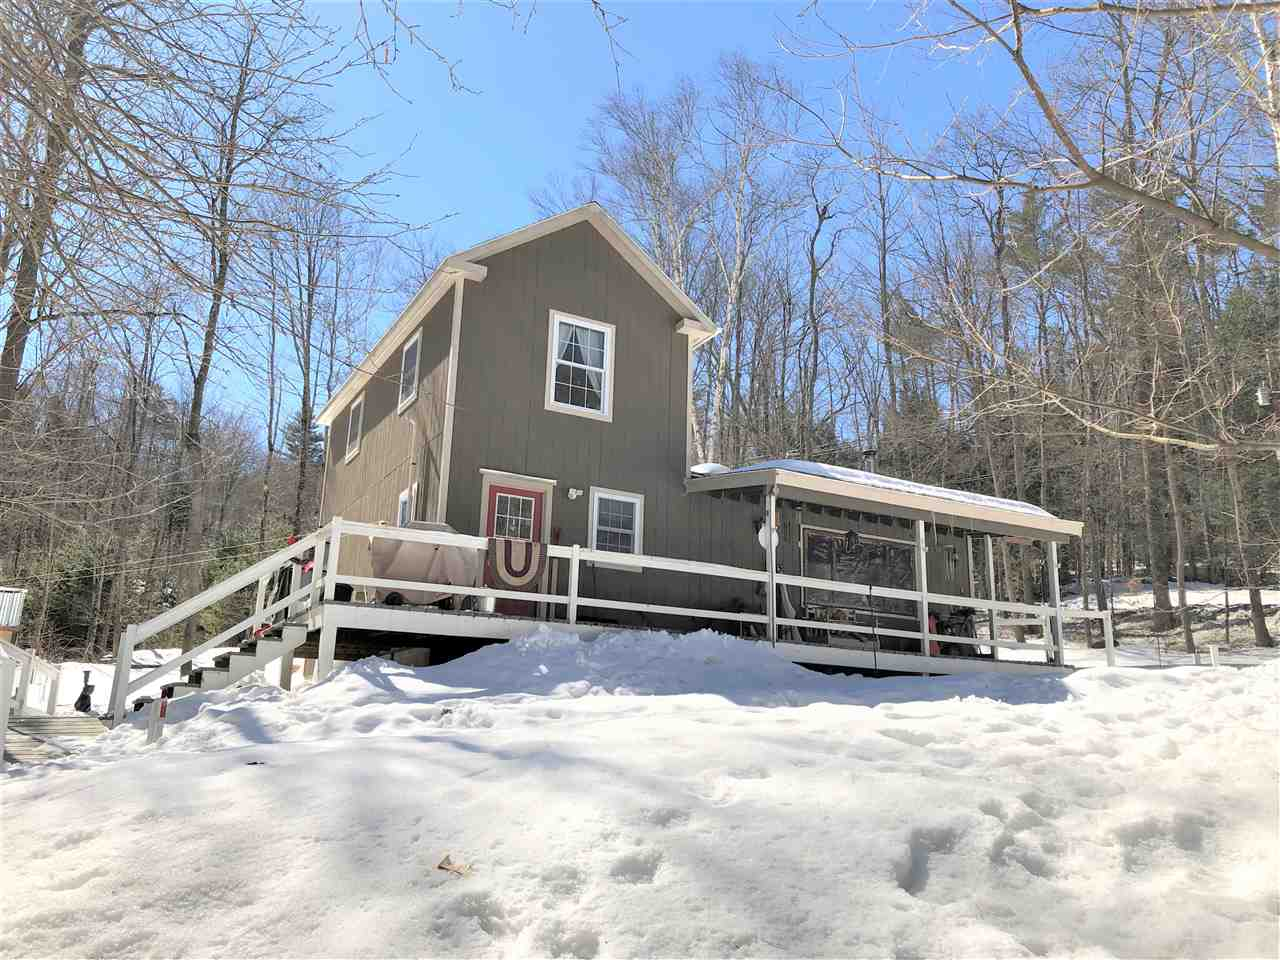 MLS 4741949: 39 Parsonage Road, Cornish NH